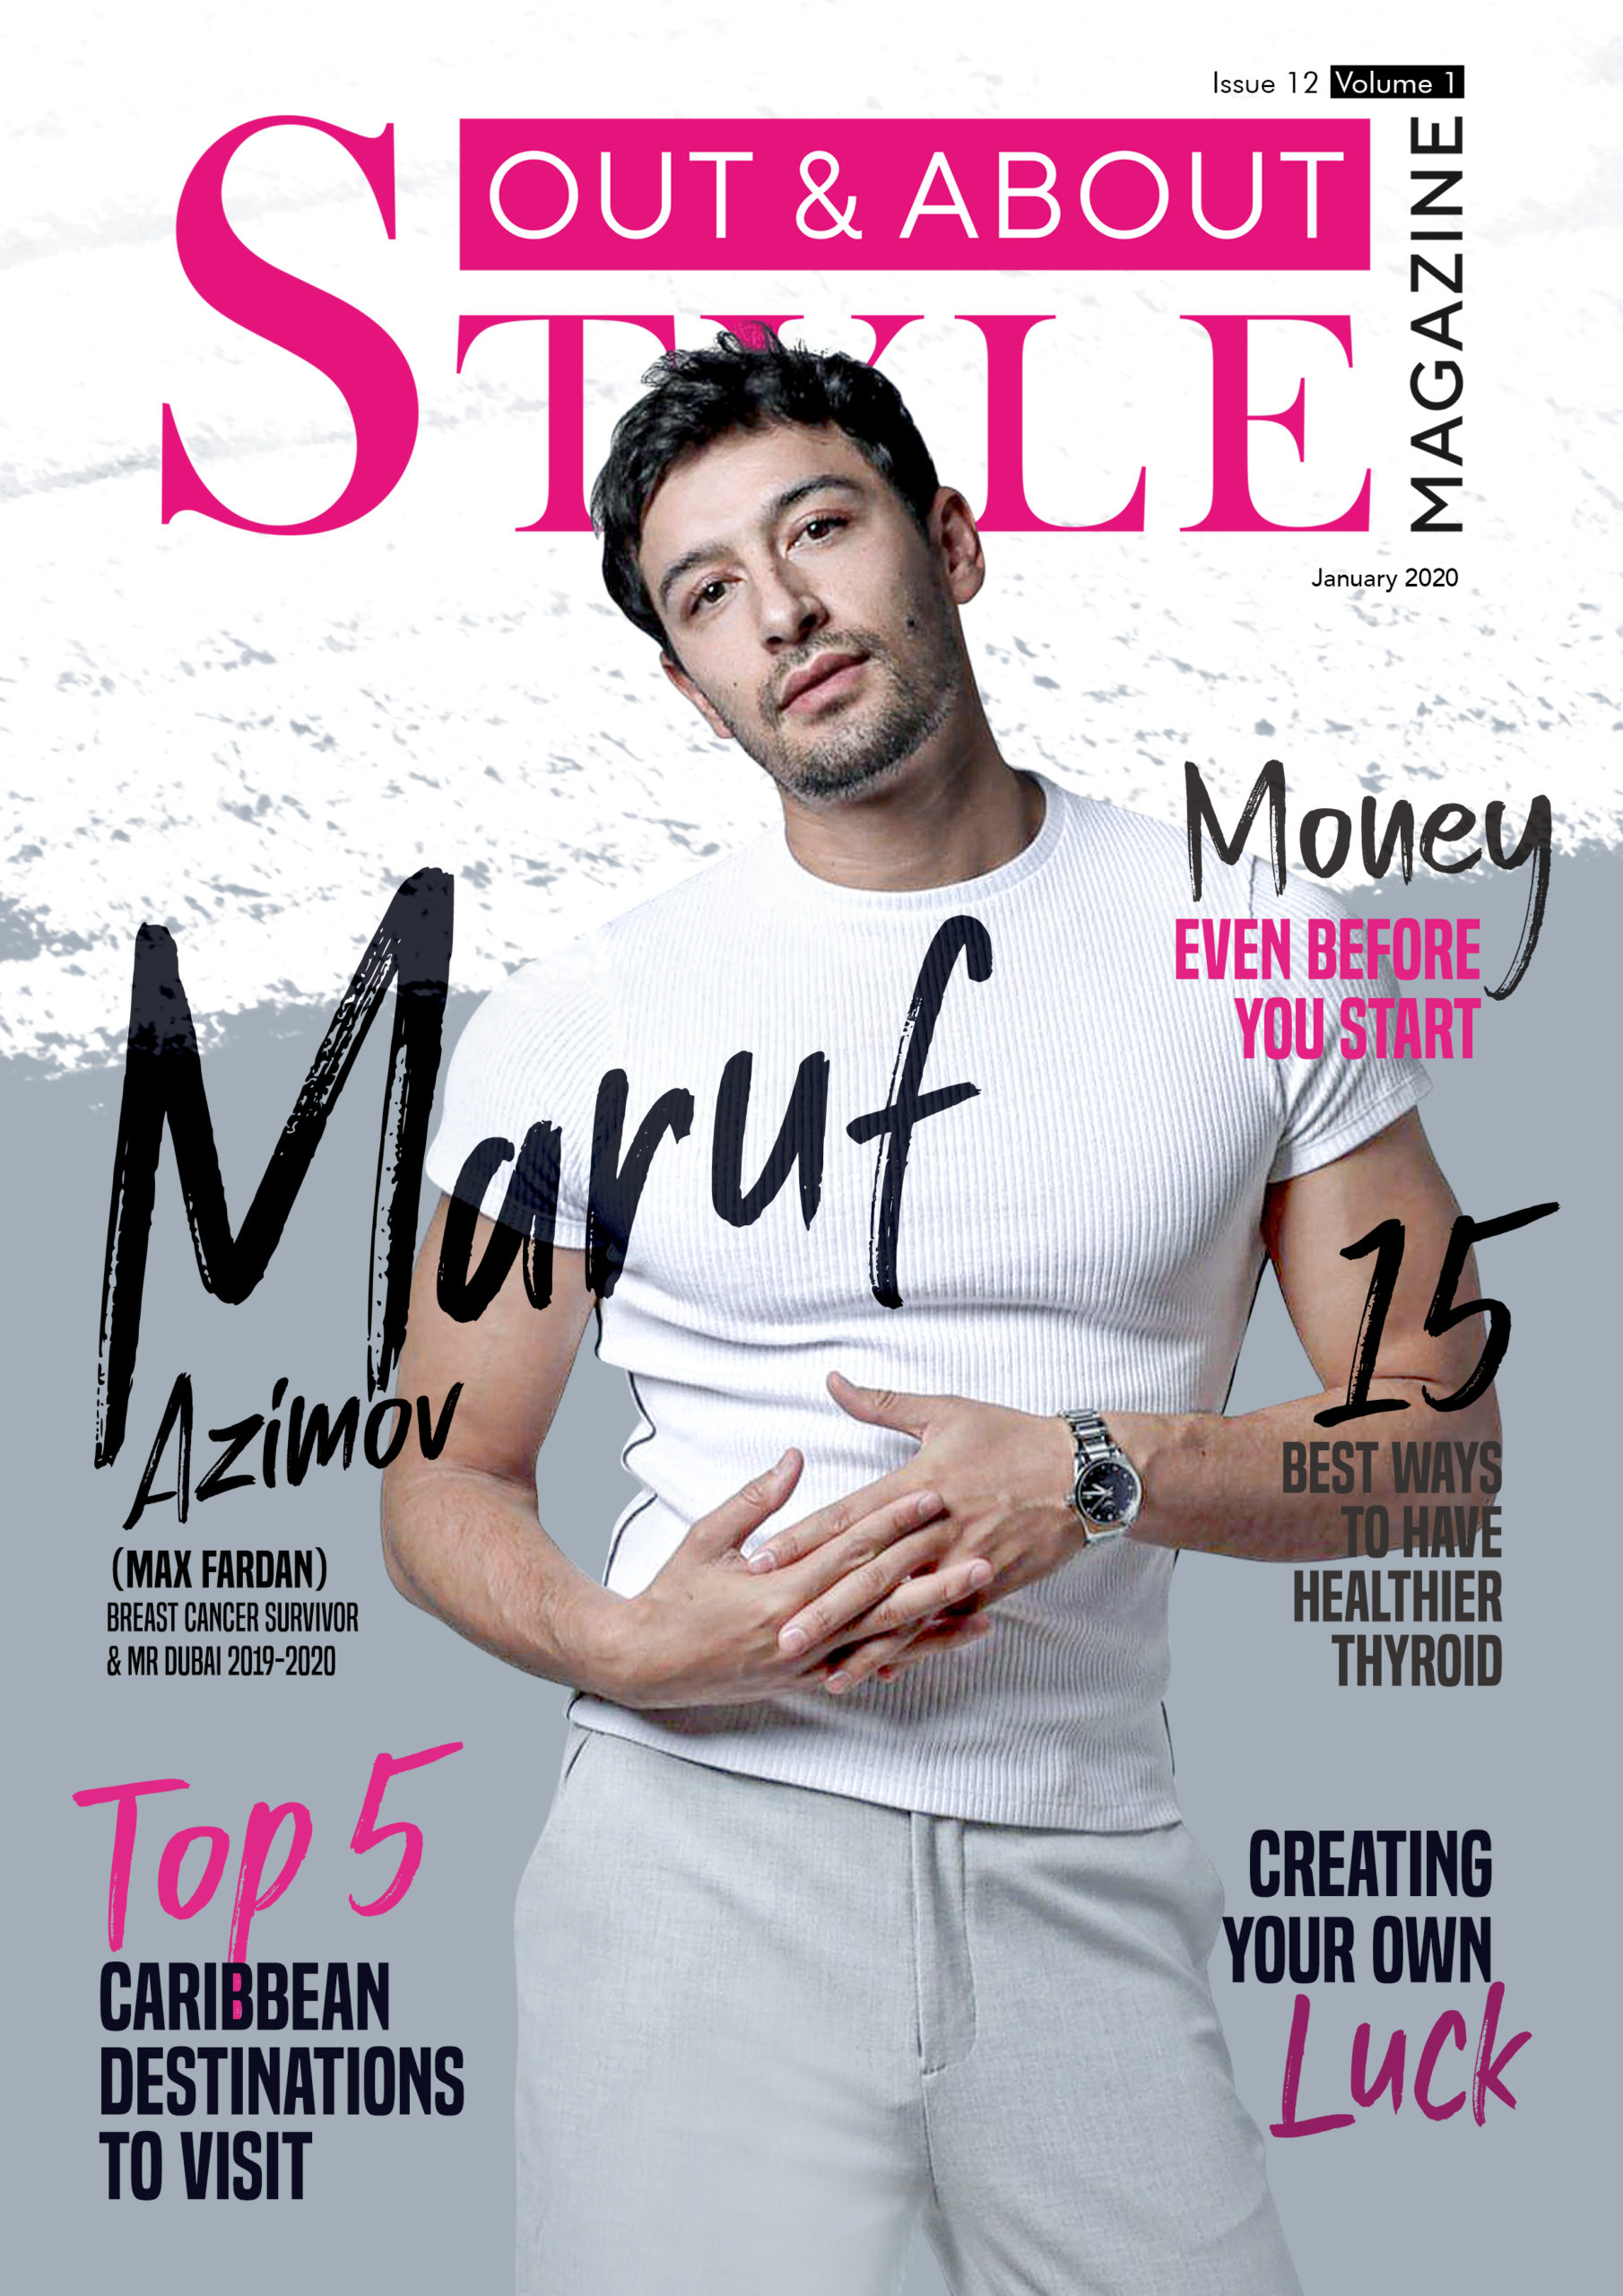 Out and About STYLE Mag Issue 12 Vol. 1 cover image